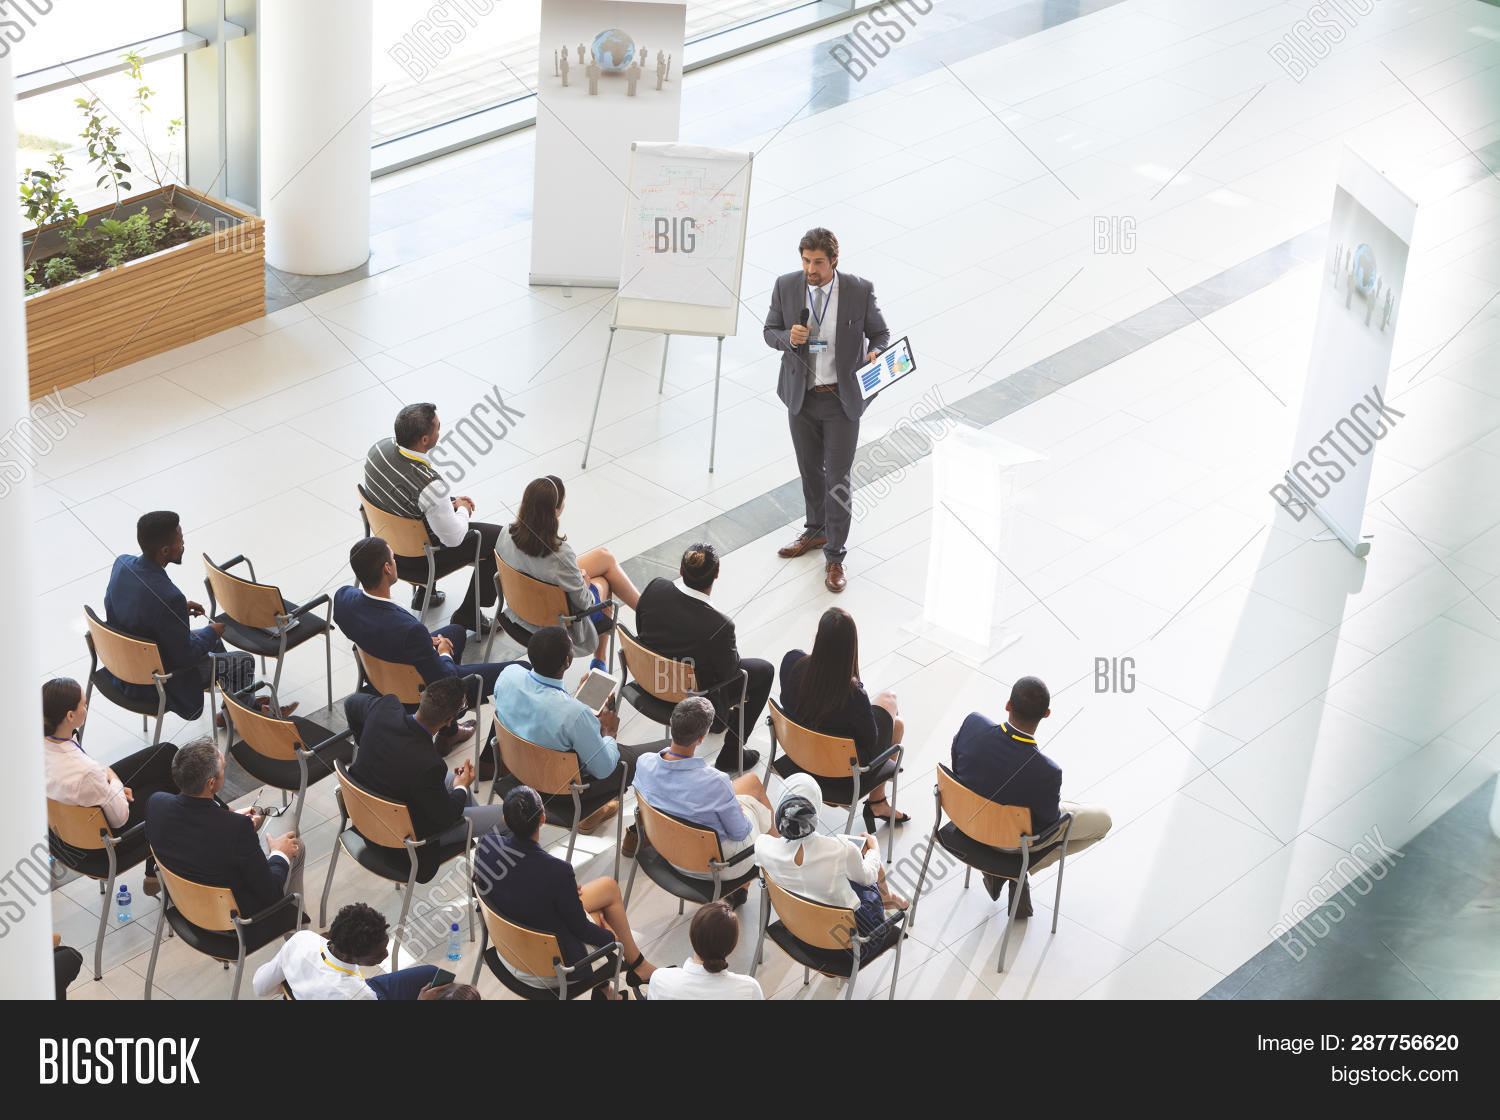 High angle view of male caucasian speaker with digital tablet speaks with microphone in a business s